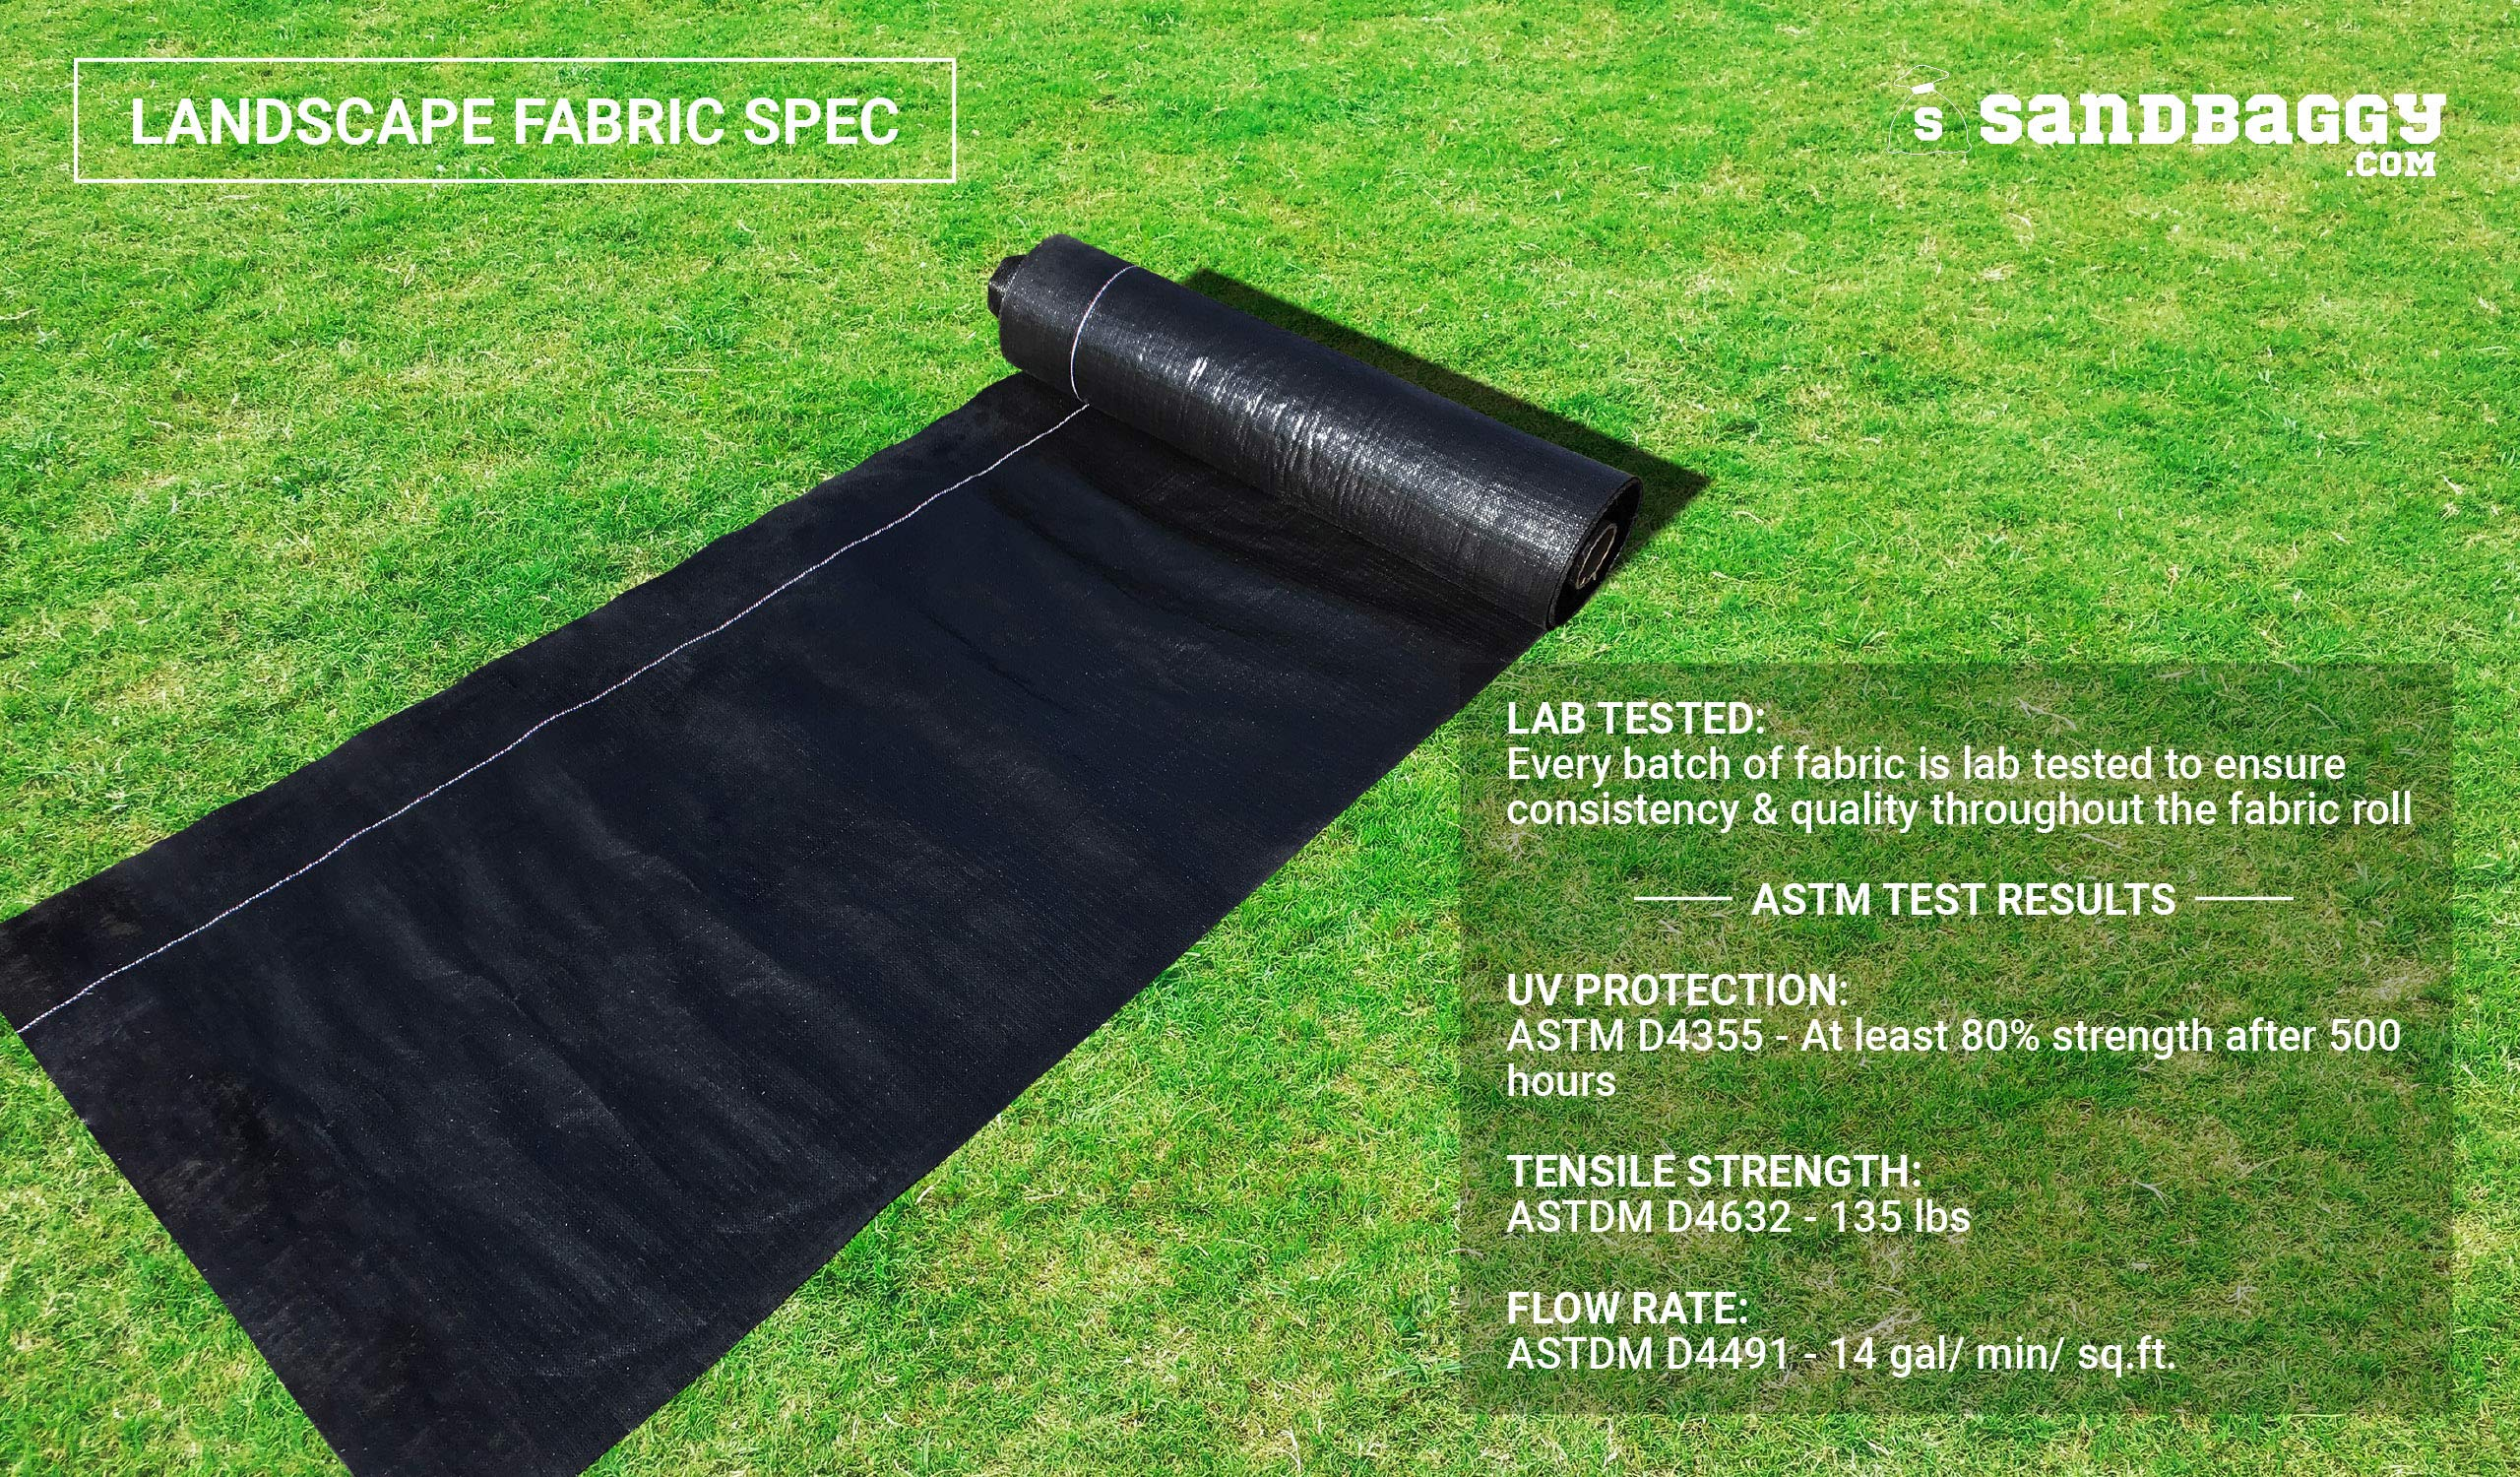 Sandbaggy Landscape Fabric - for Weed Barrier, Ground Cover, Garden Fabric (3 ft x 500 ft Roll) by Sandbaggy (Image #5)